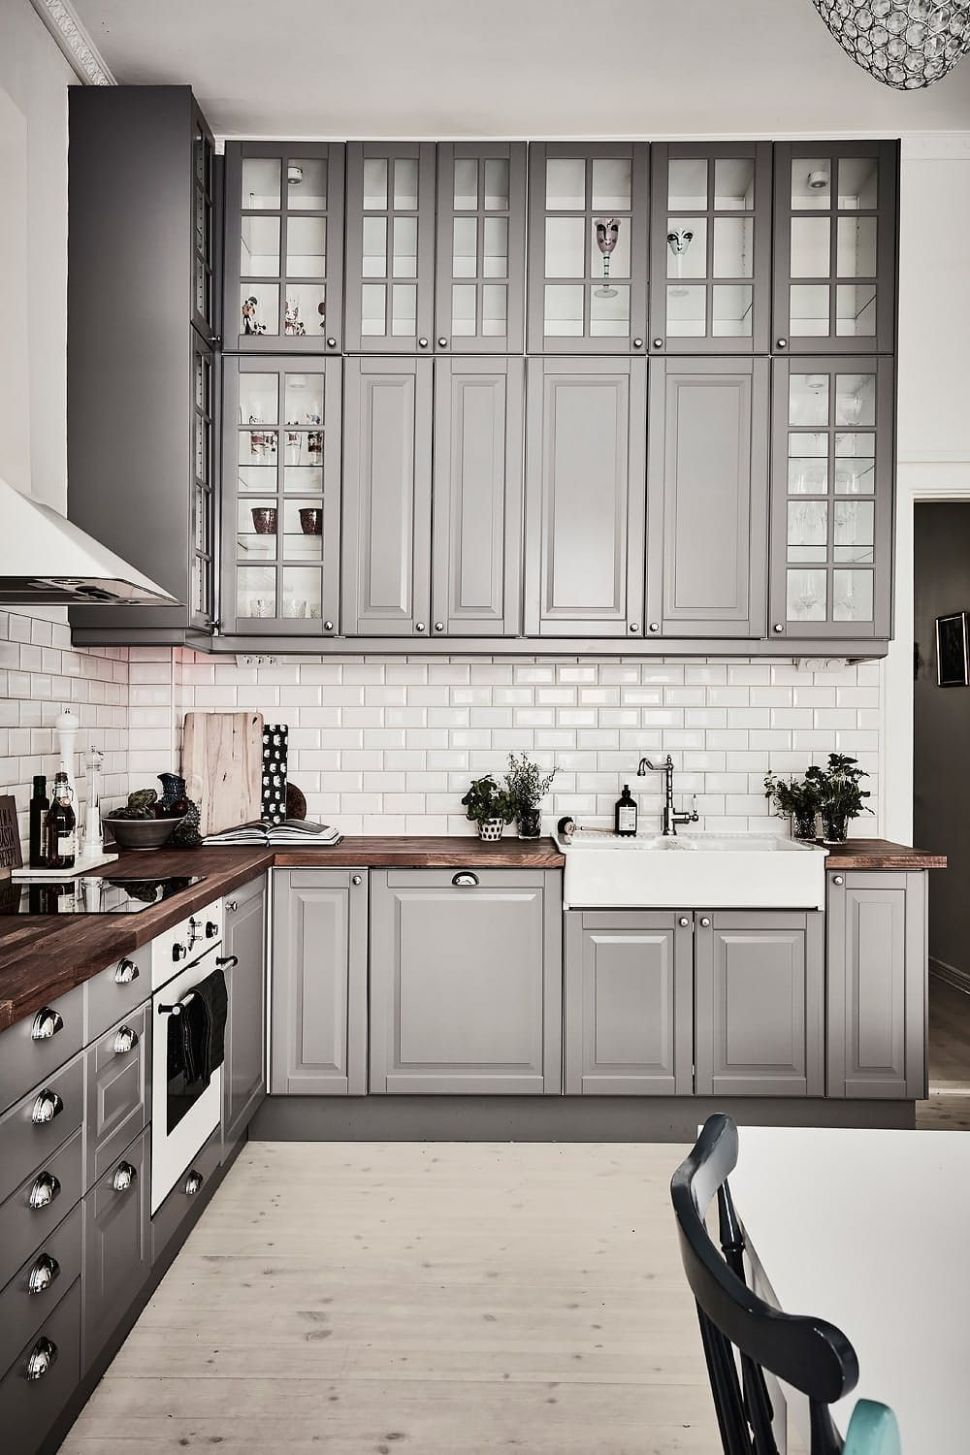 8 Cool Kitchen Design Ideas (With images)   Kitchen inspirations ..